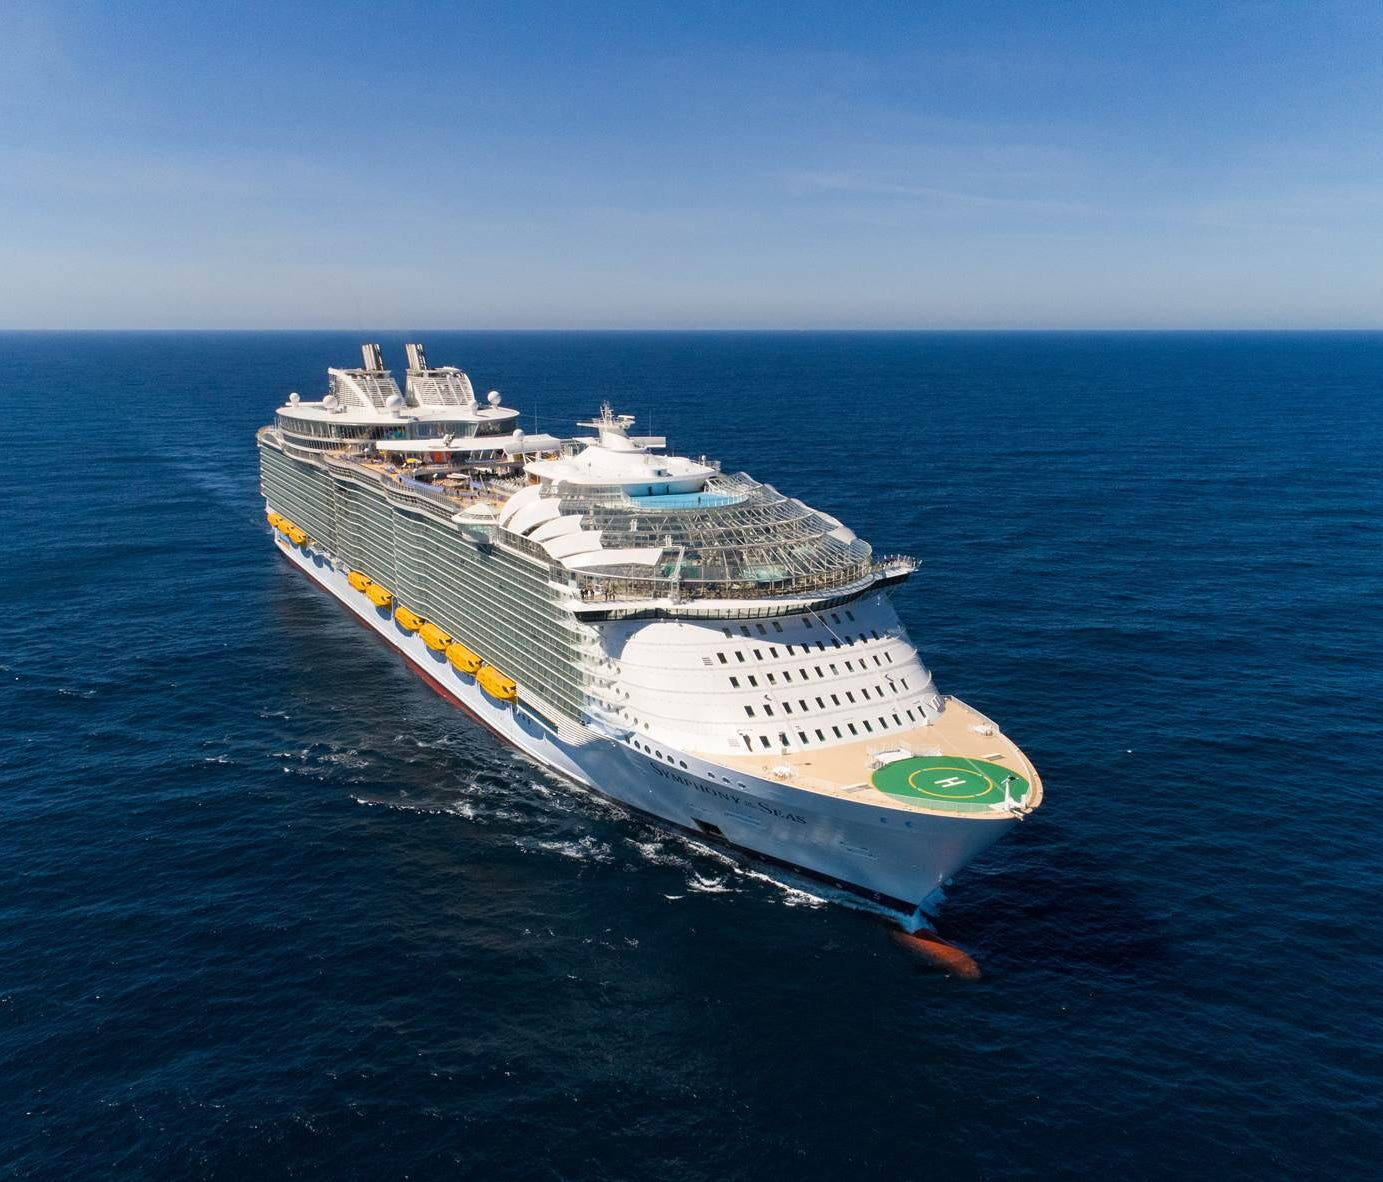 1. Royal Caribbean's Symphony of the Seas. Unveiled in March 2018, the 18-deck-high vessel measures 228,081 tons and can carry up to 6,680 passengers at full capacity.